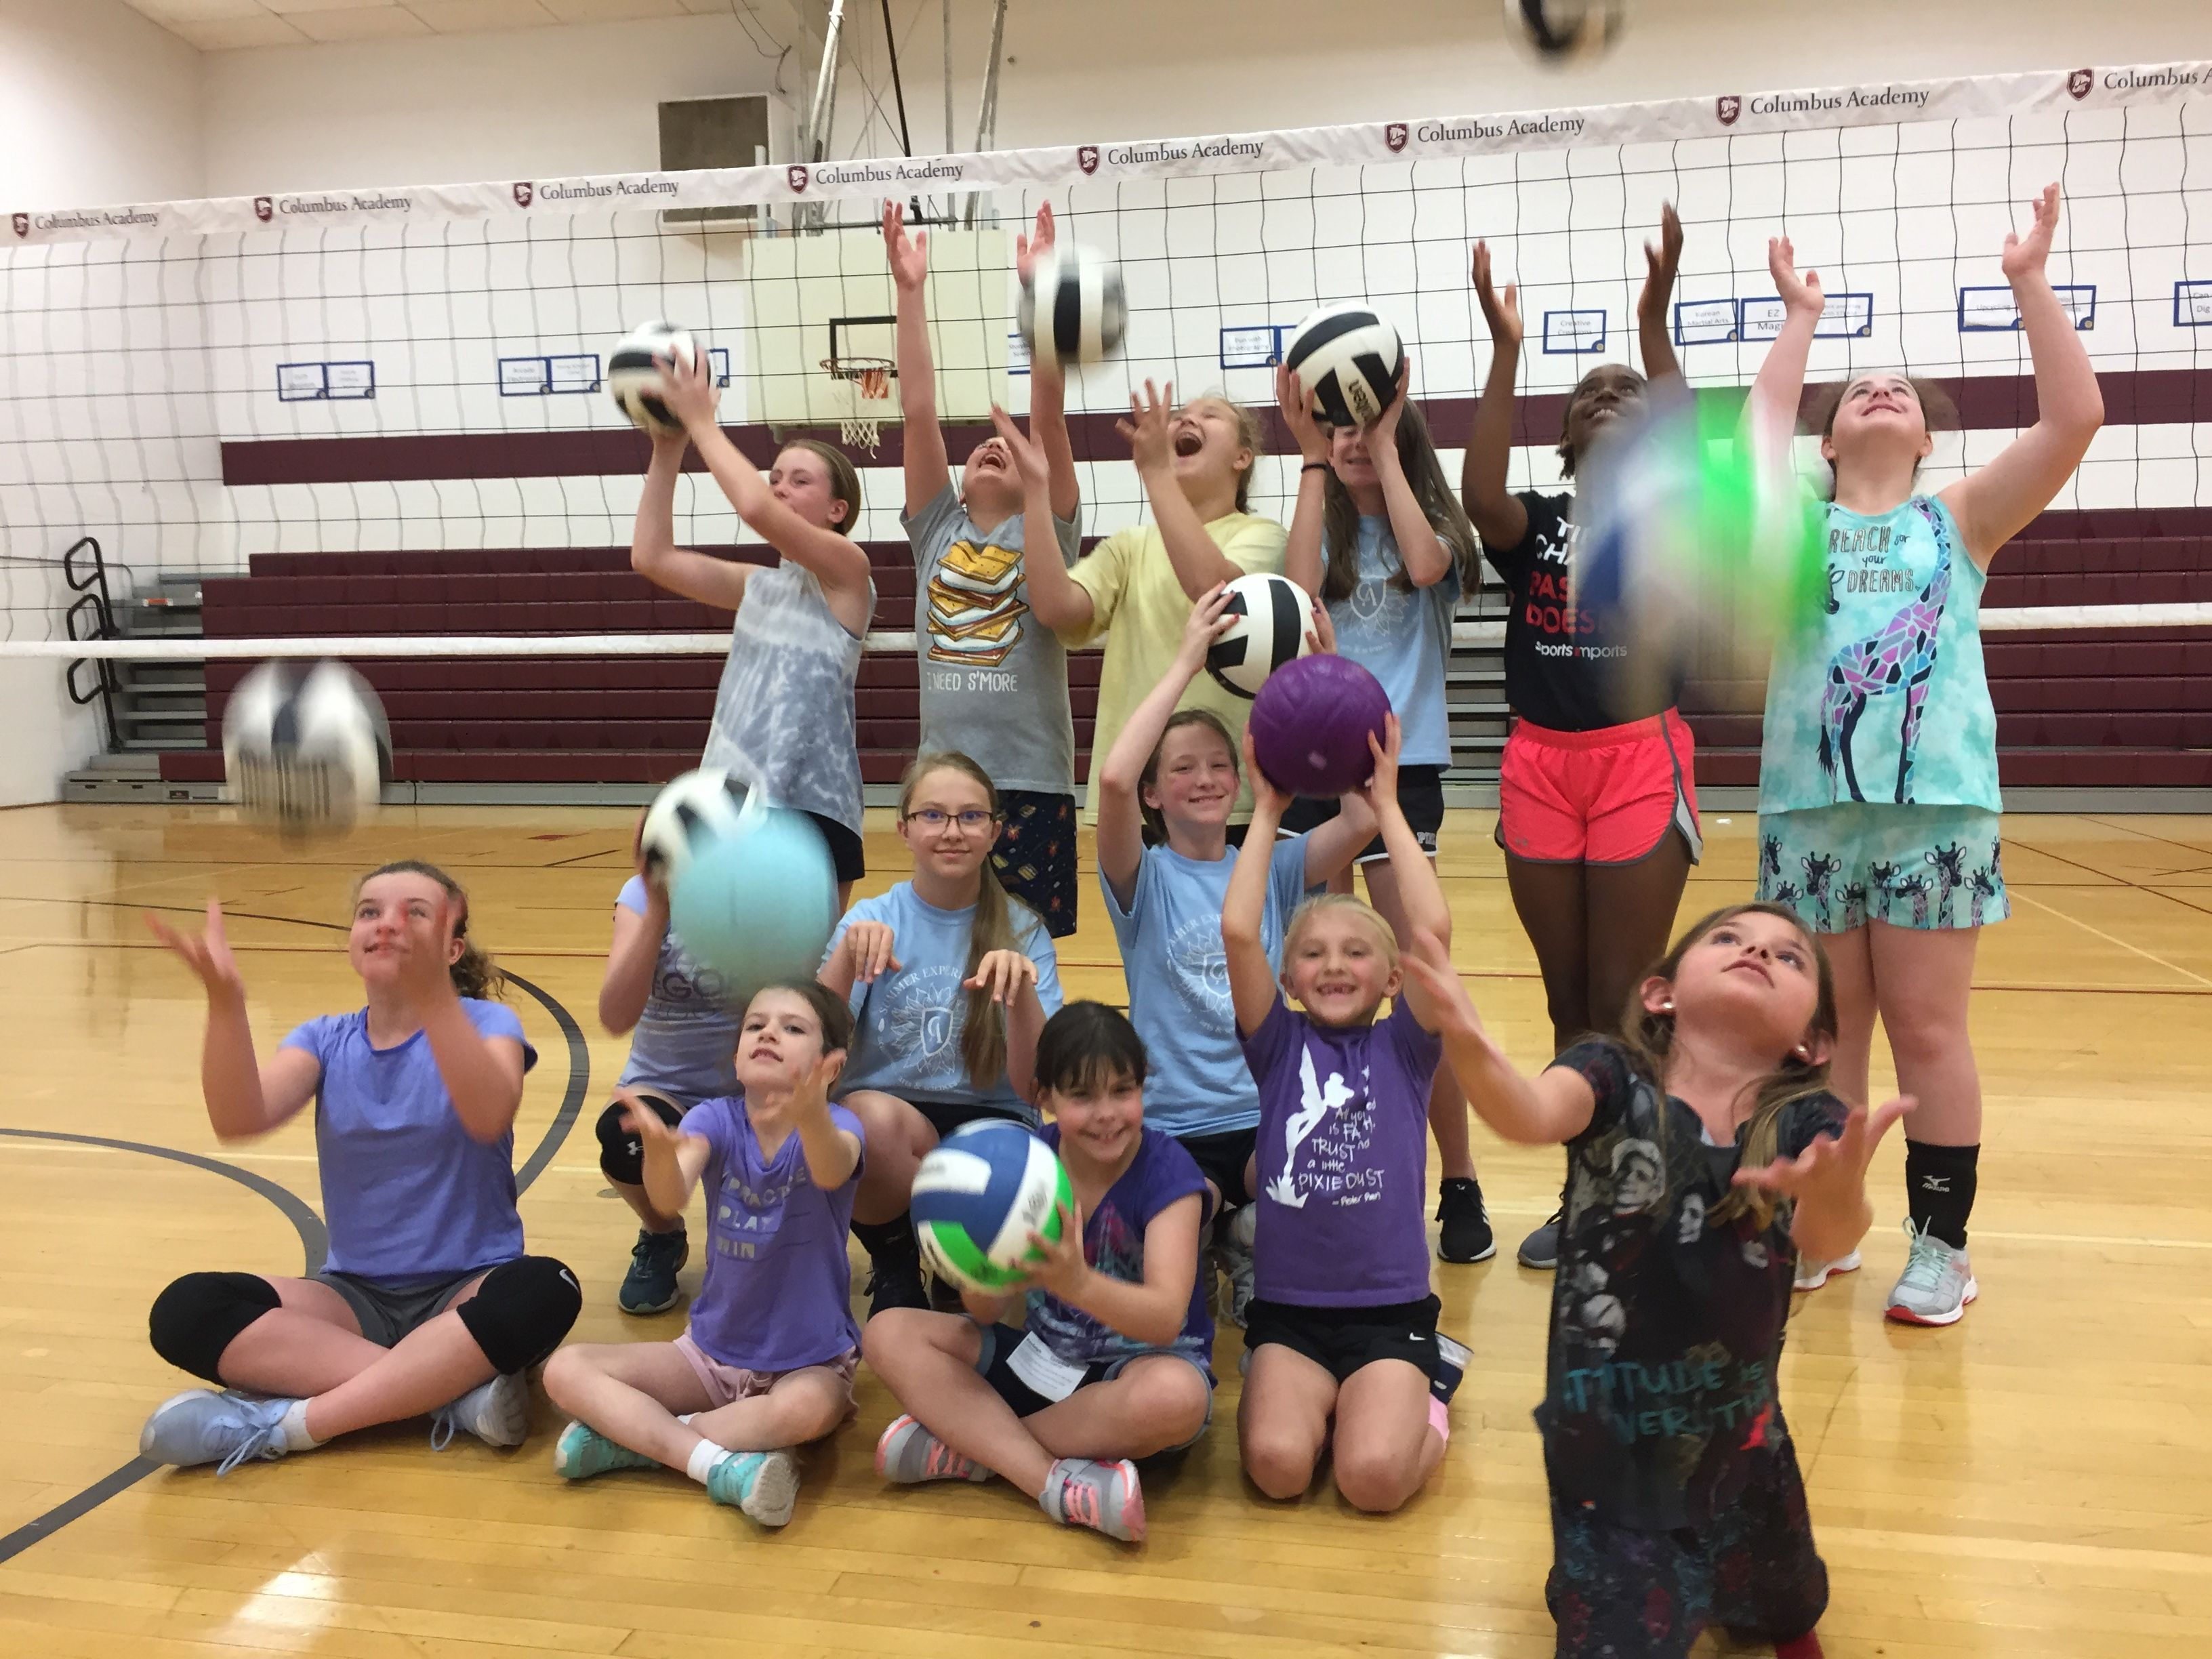 Summer Volleyball Camp Volleyball Camp Volleyball Net Volleyball